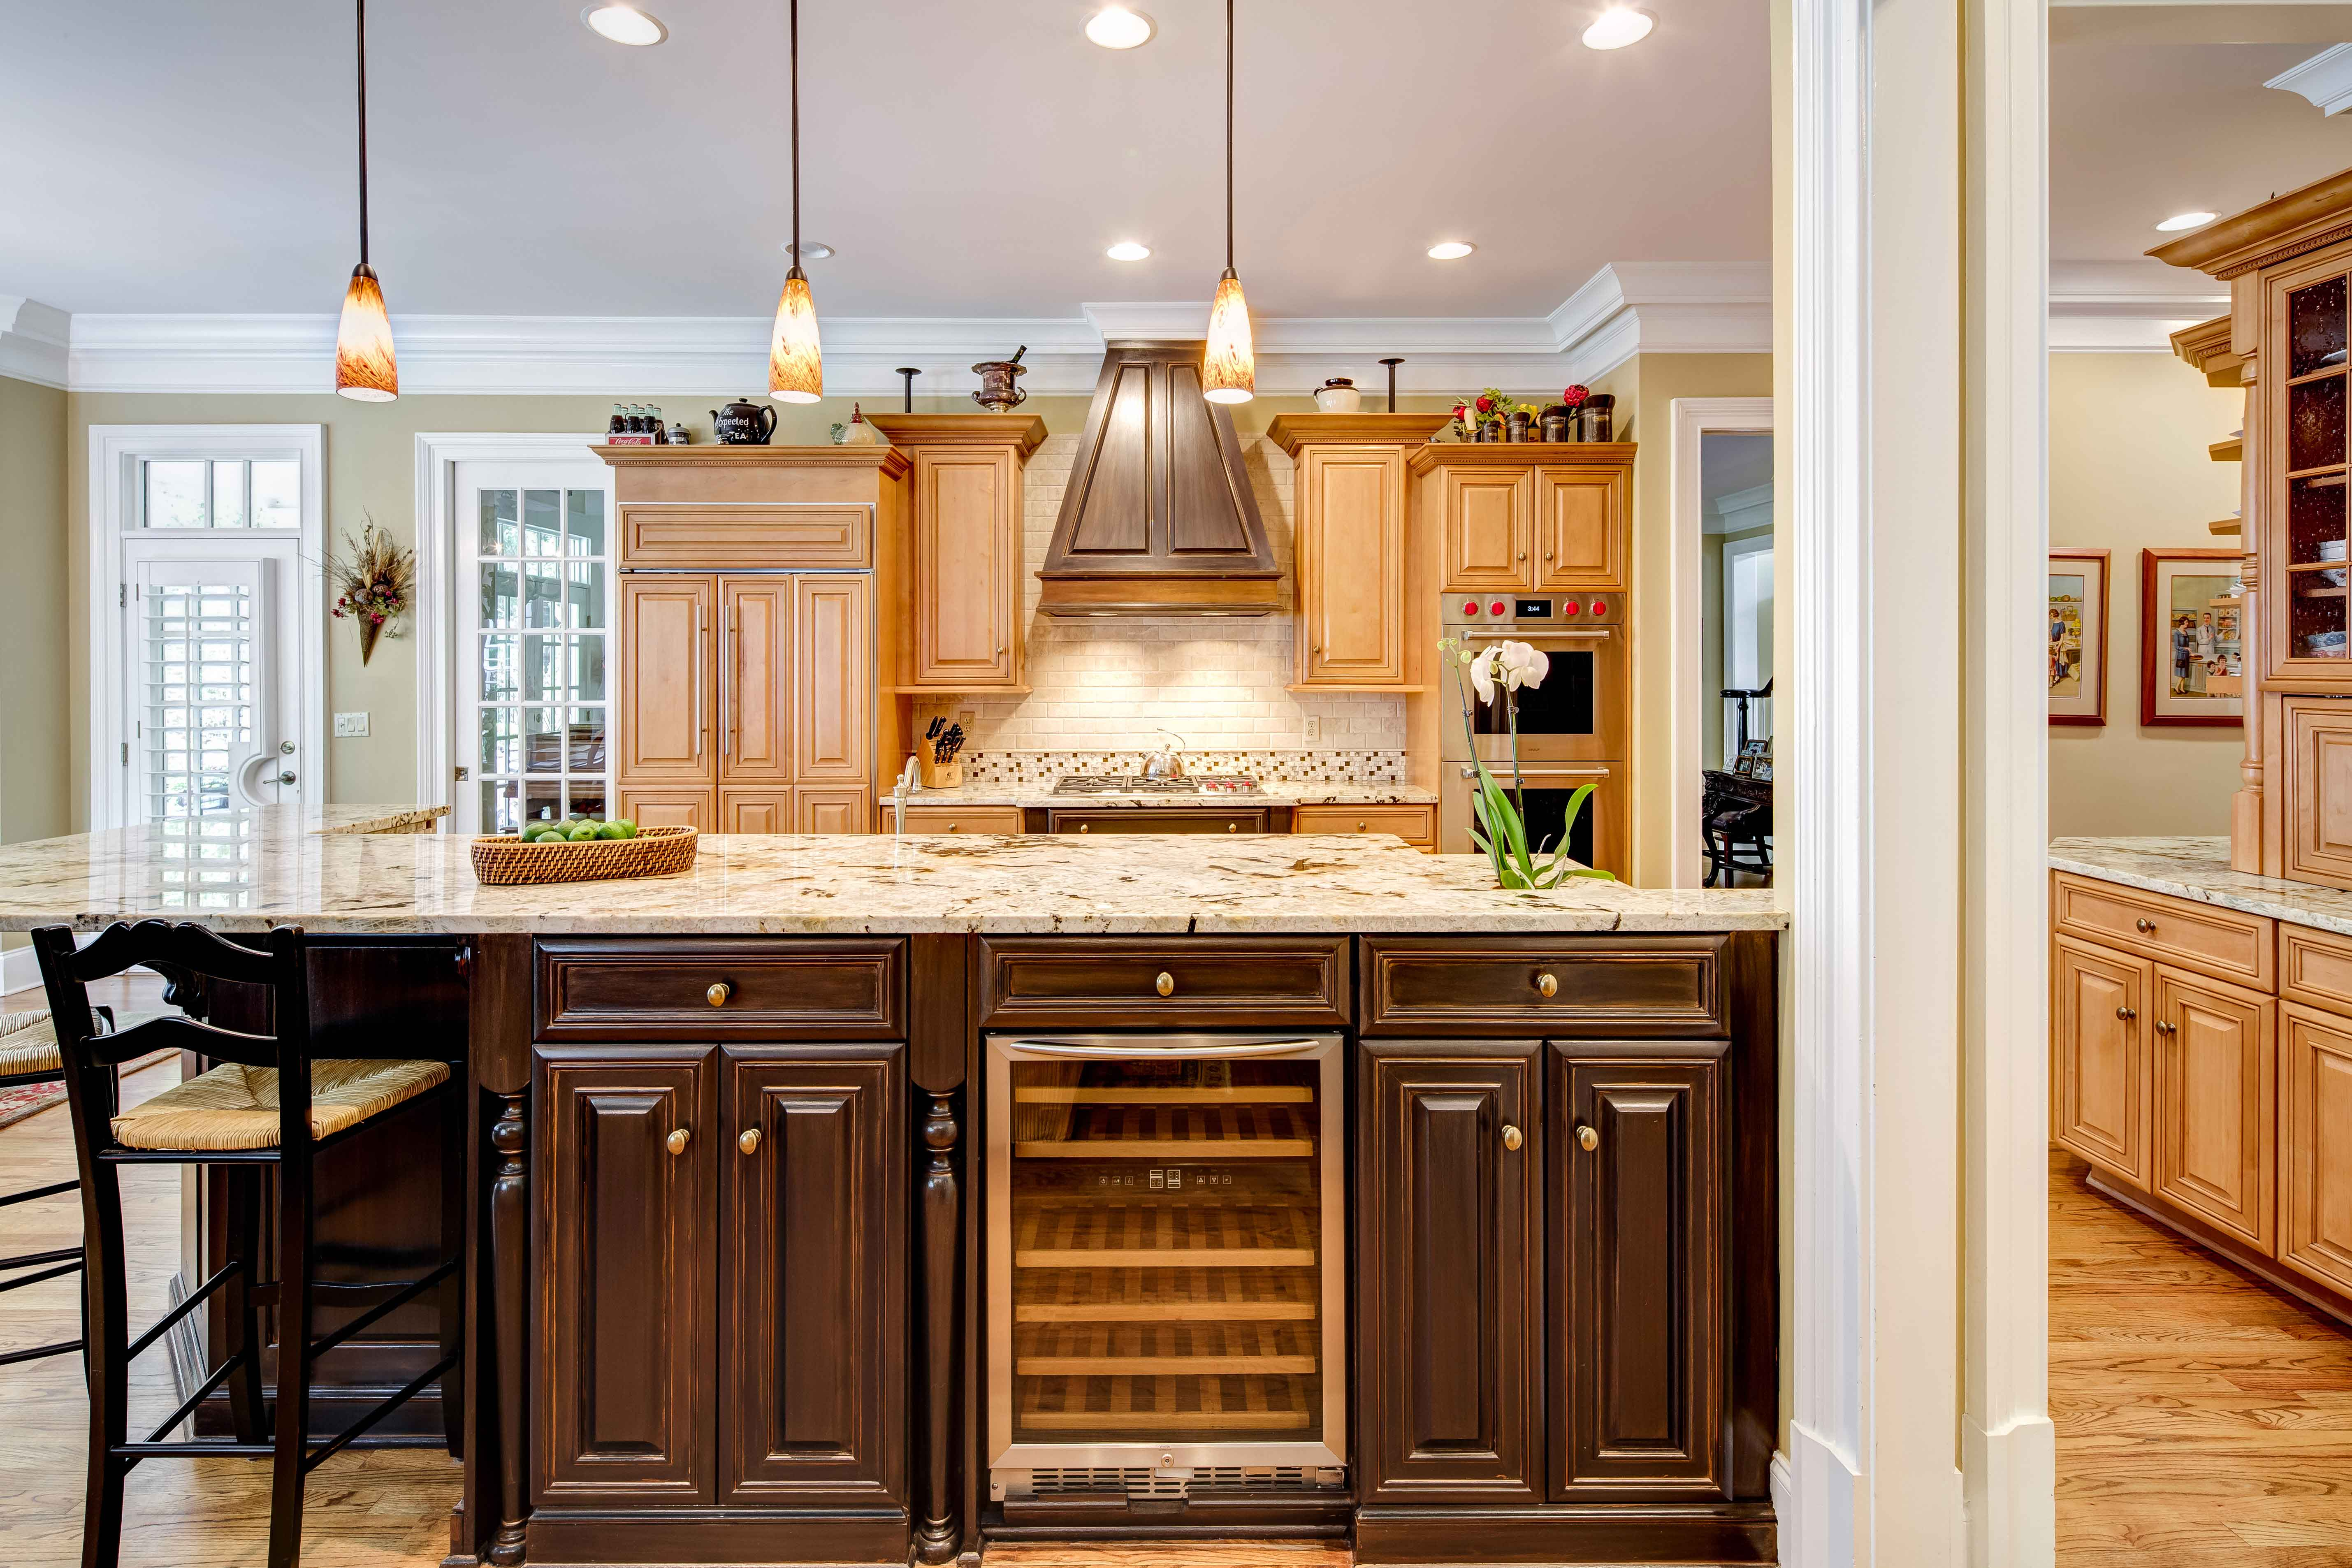 Brown Kitchen Cabinetry and Hood